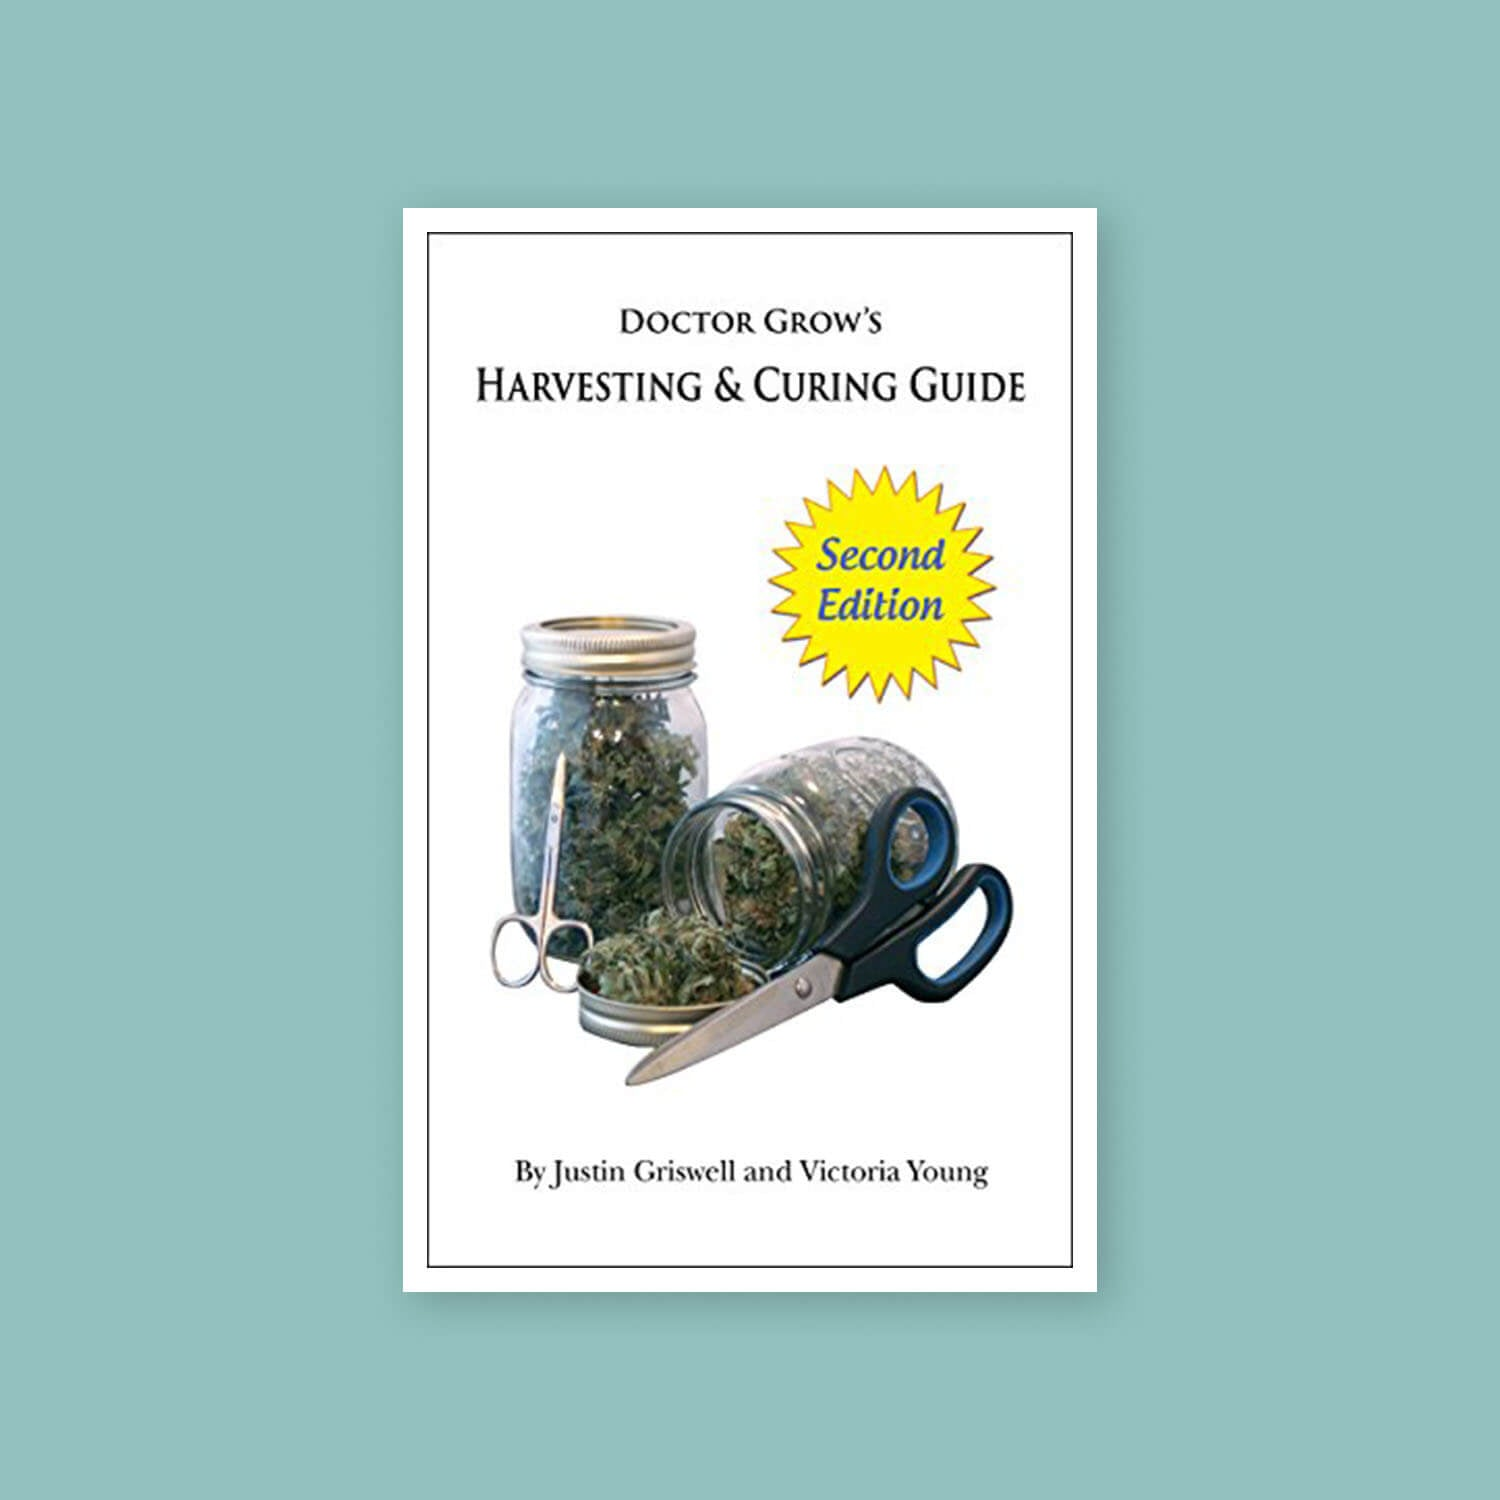 Doctor's harvesting and curing guide to cannabis - Goldleaf bookshelf